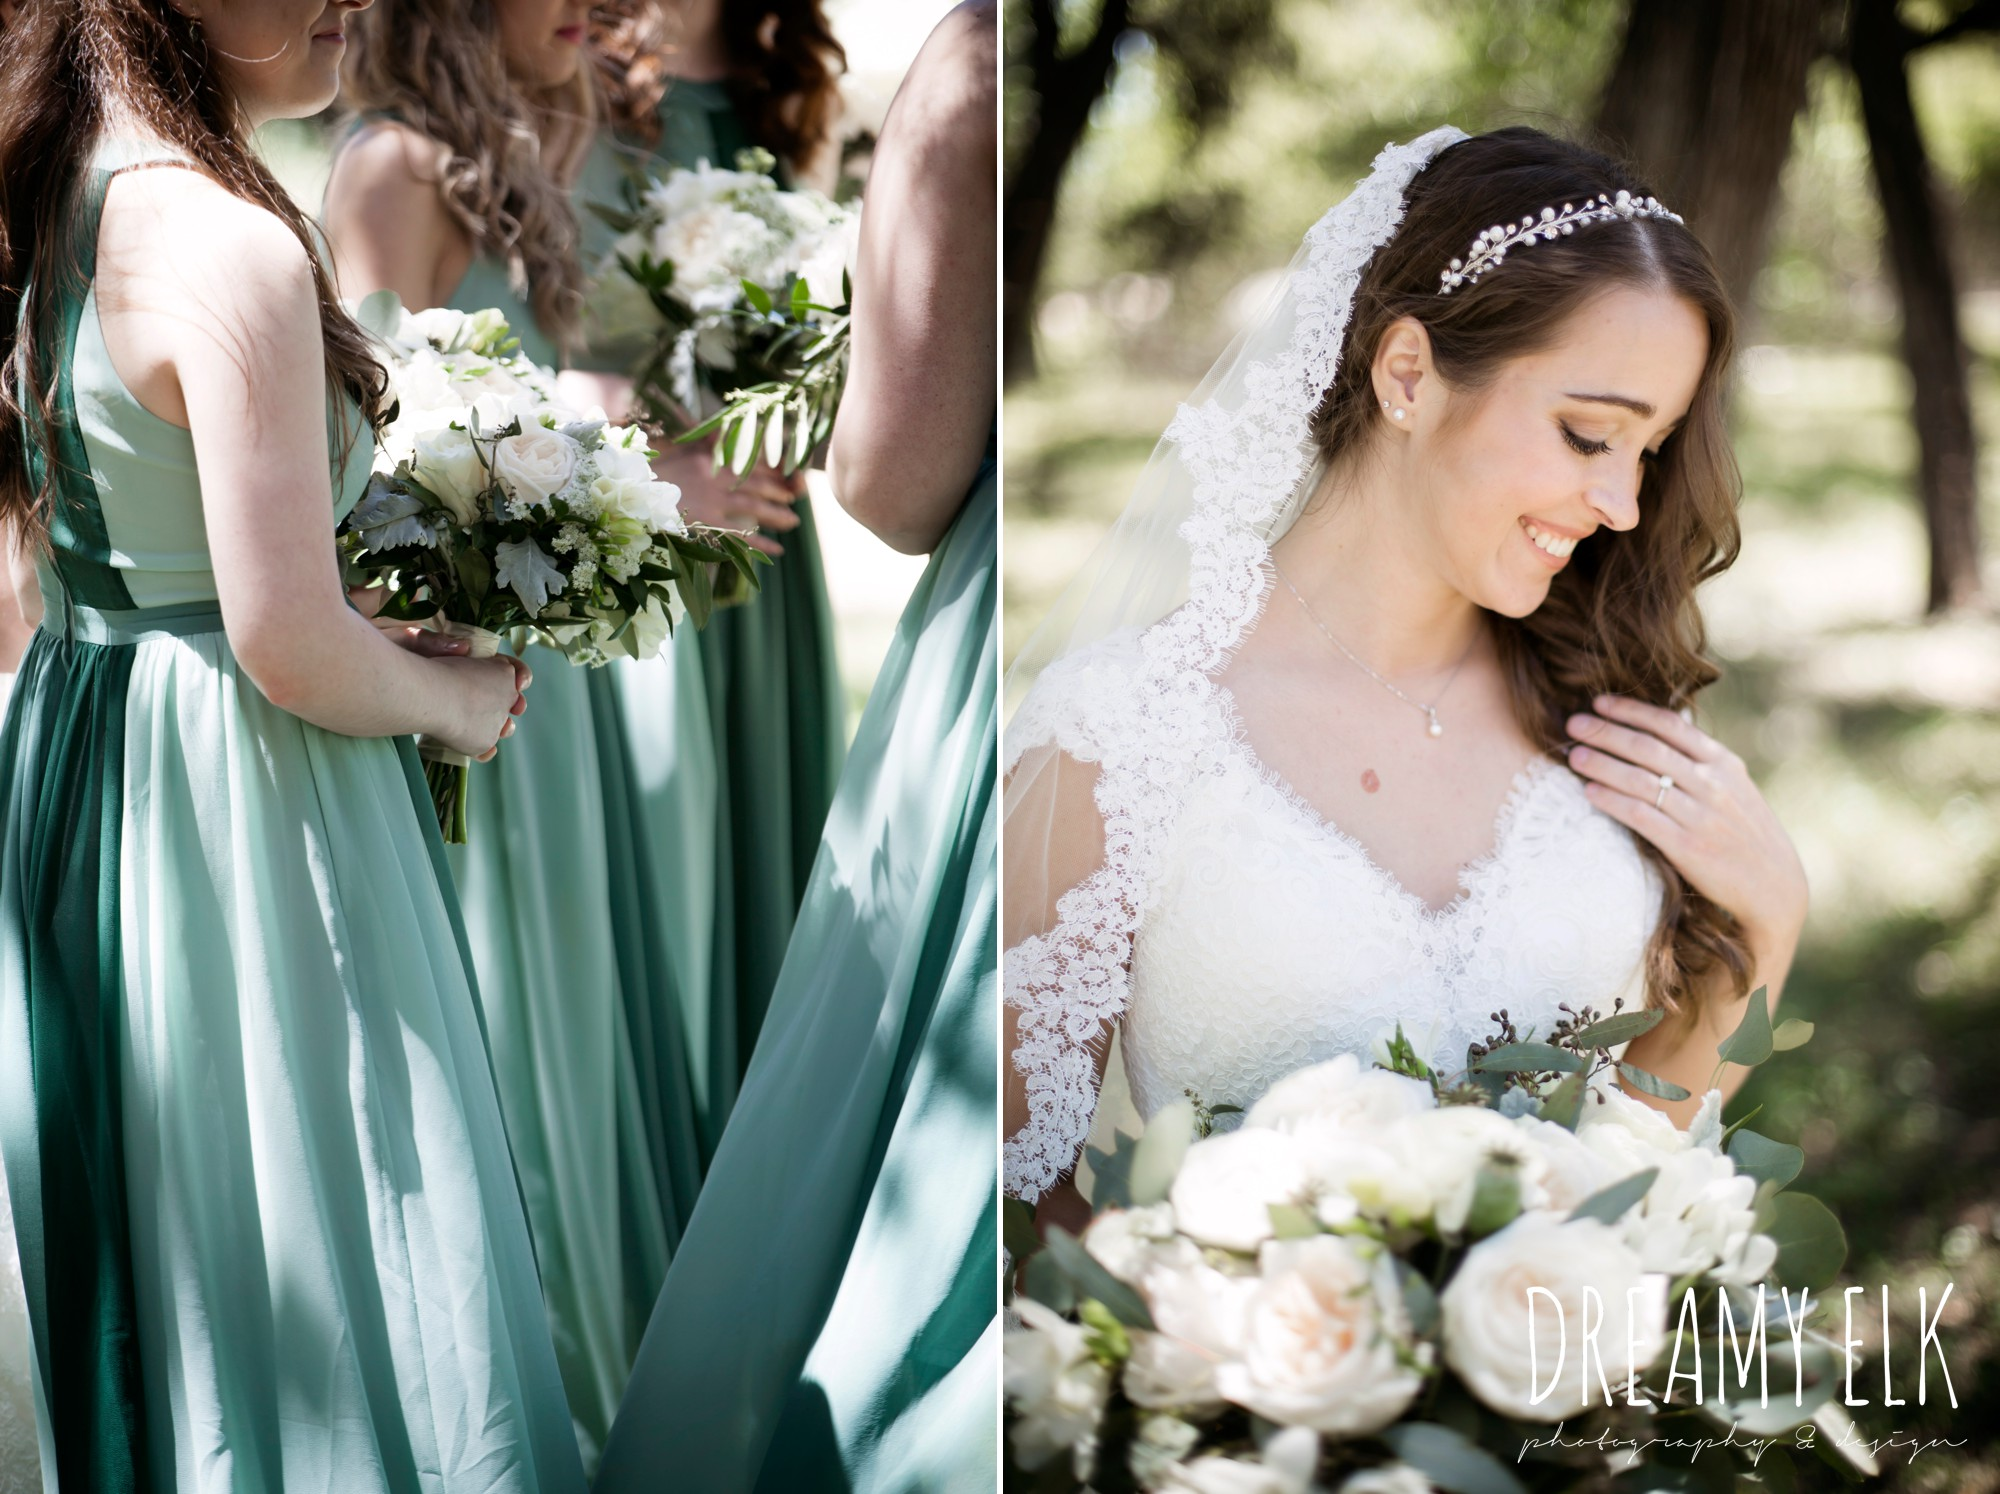 green bridesmaids dresses, mod cloth, lace wedding dress, lace wedding veil, white wedding bouquets,